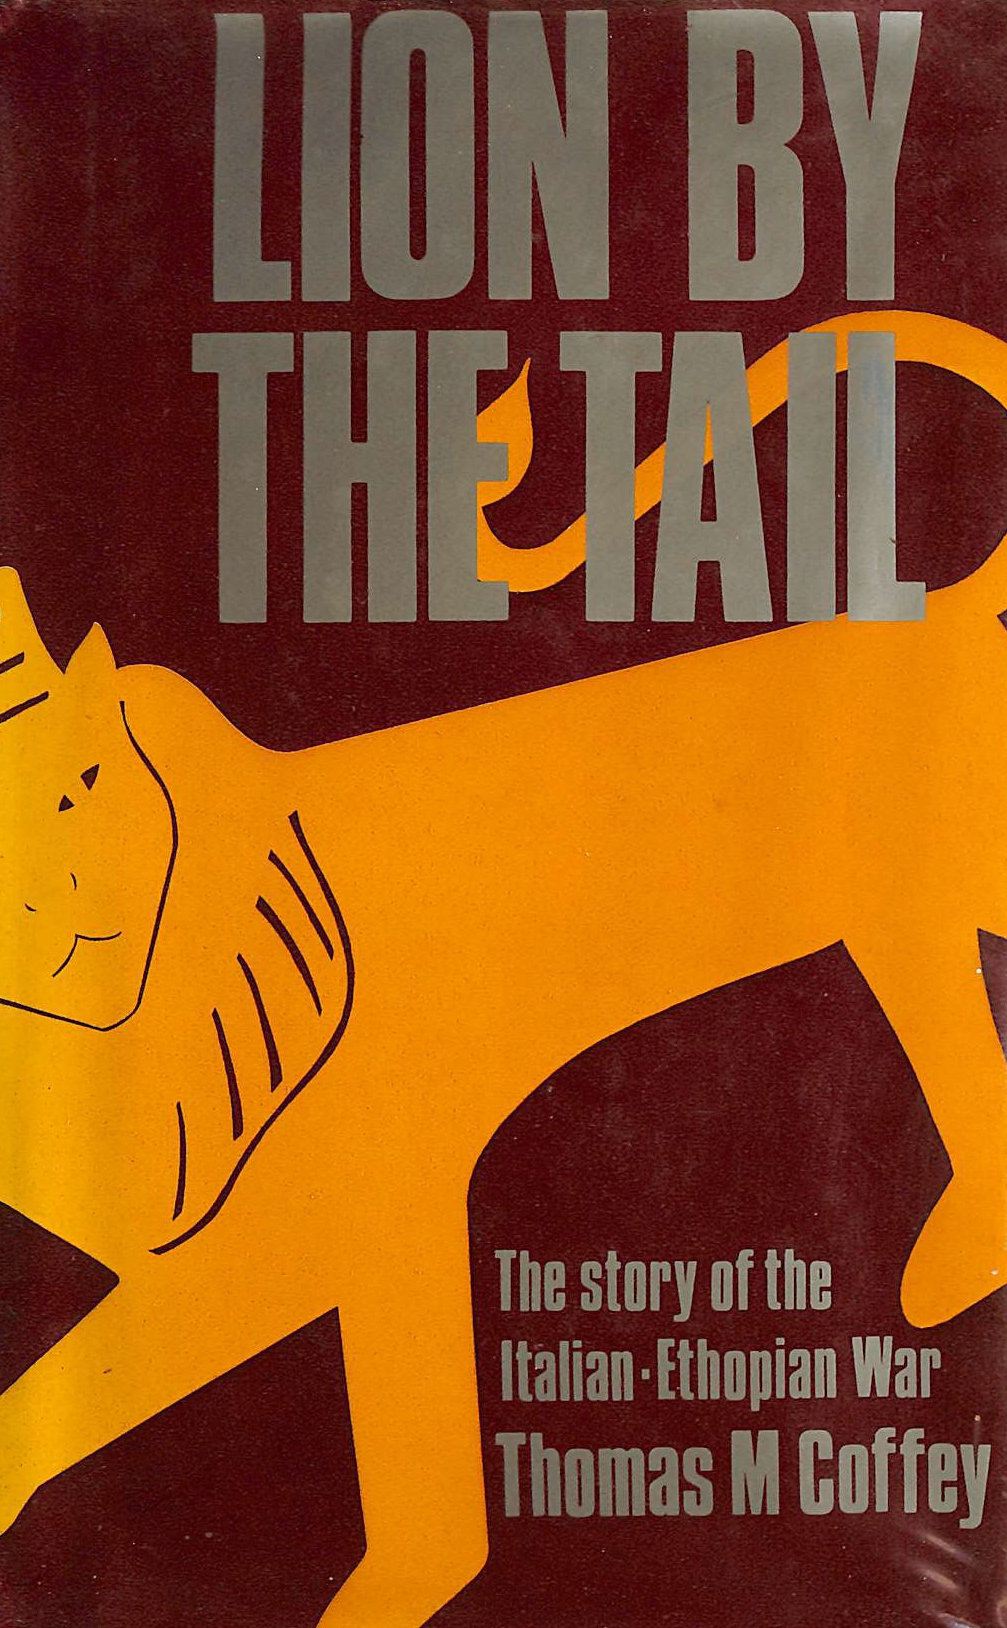 Image for Lion by the Tail: Story of the Italian-Ethiopian War